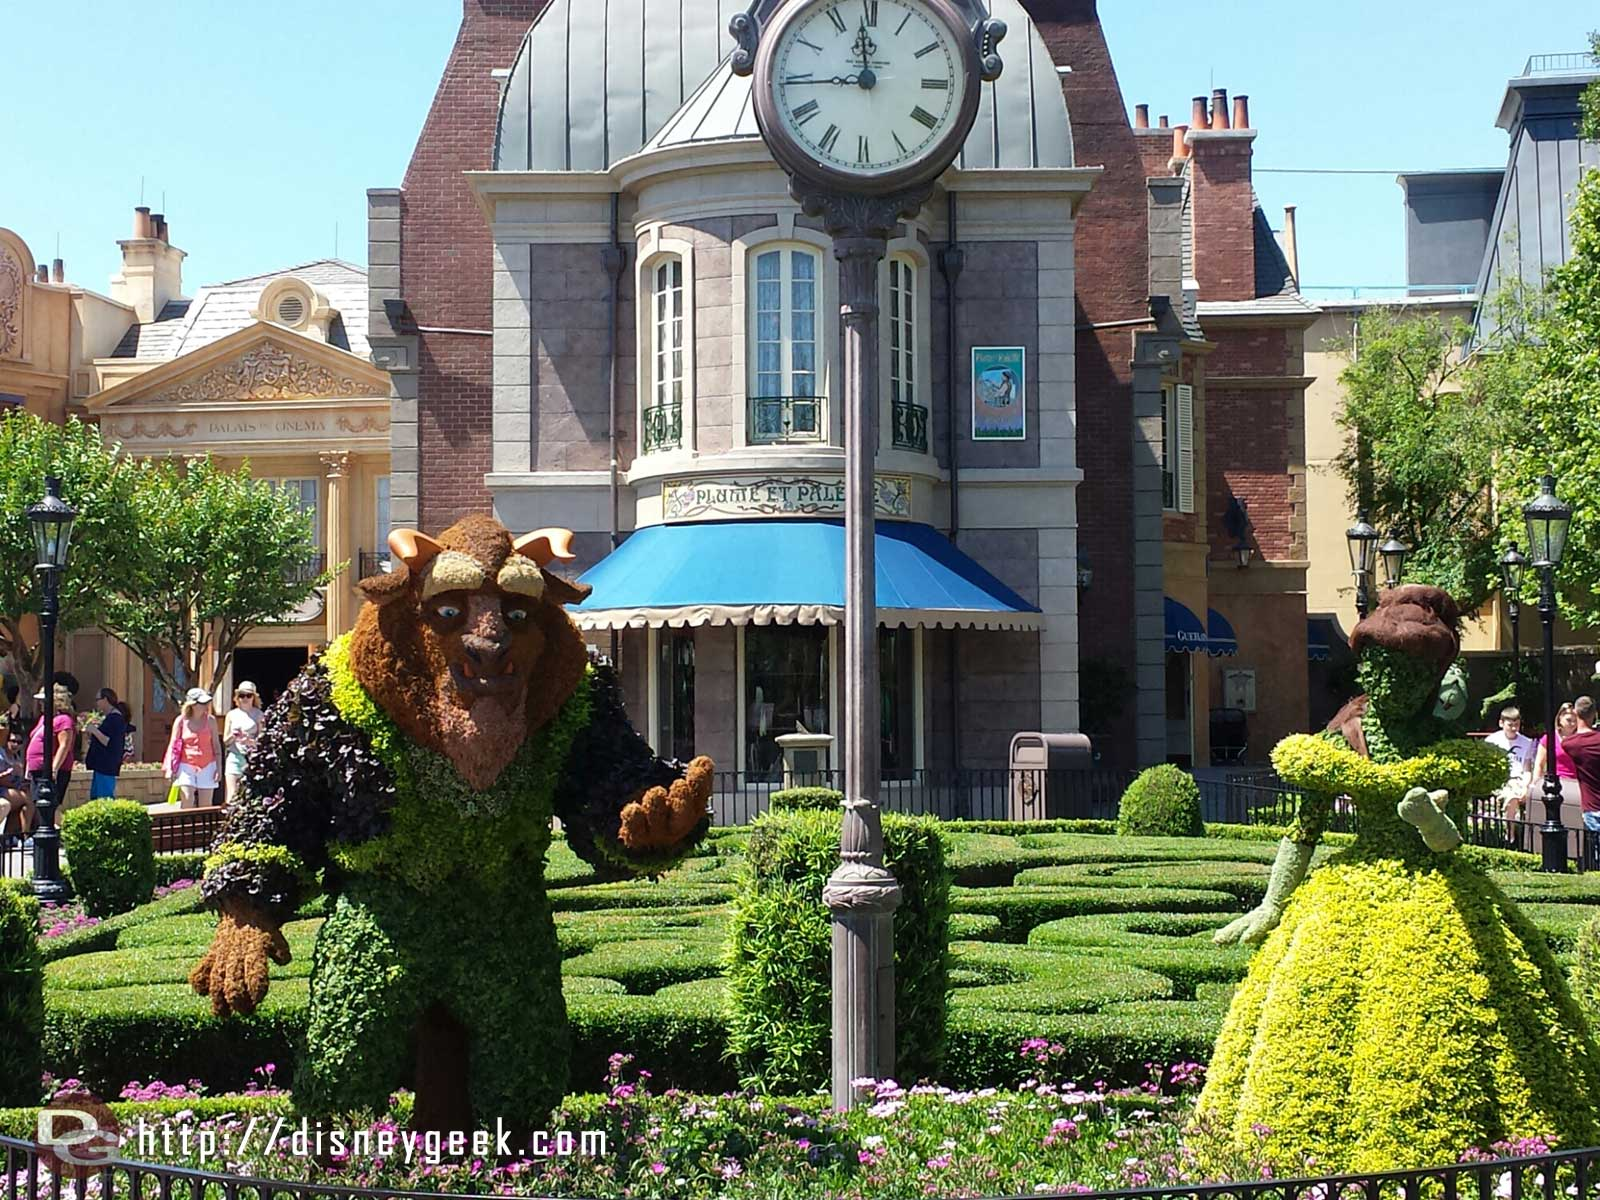 2014 - Belle & the Beast Topiaries from Beauty and the Beast